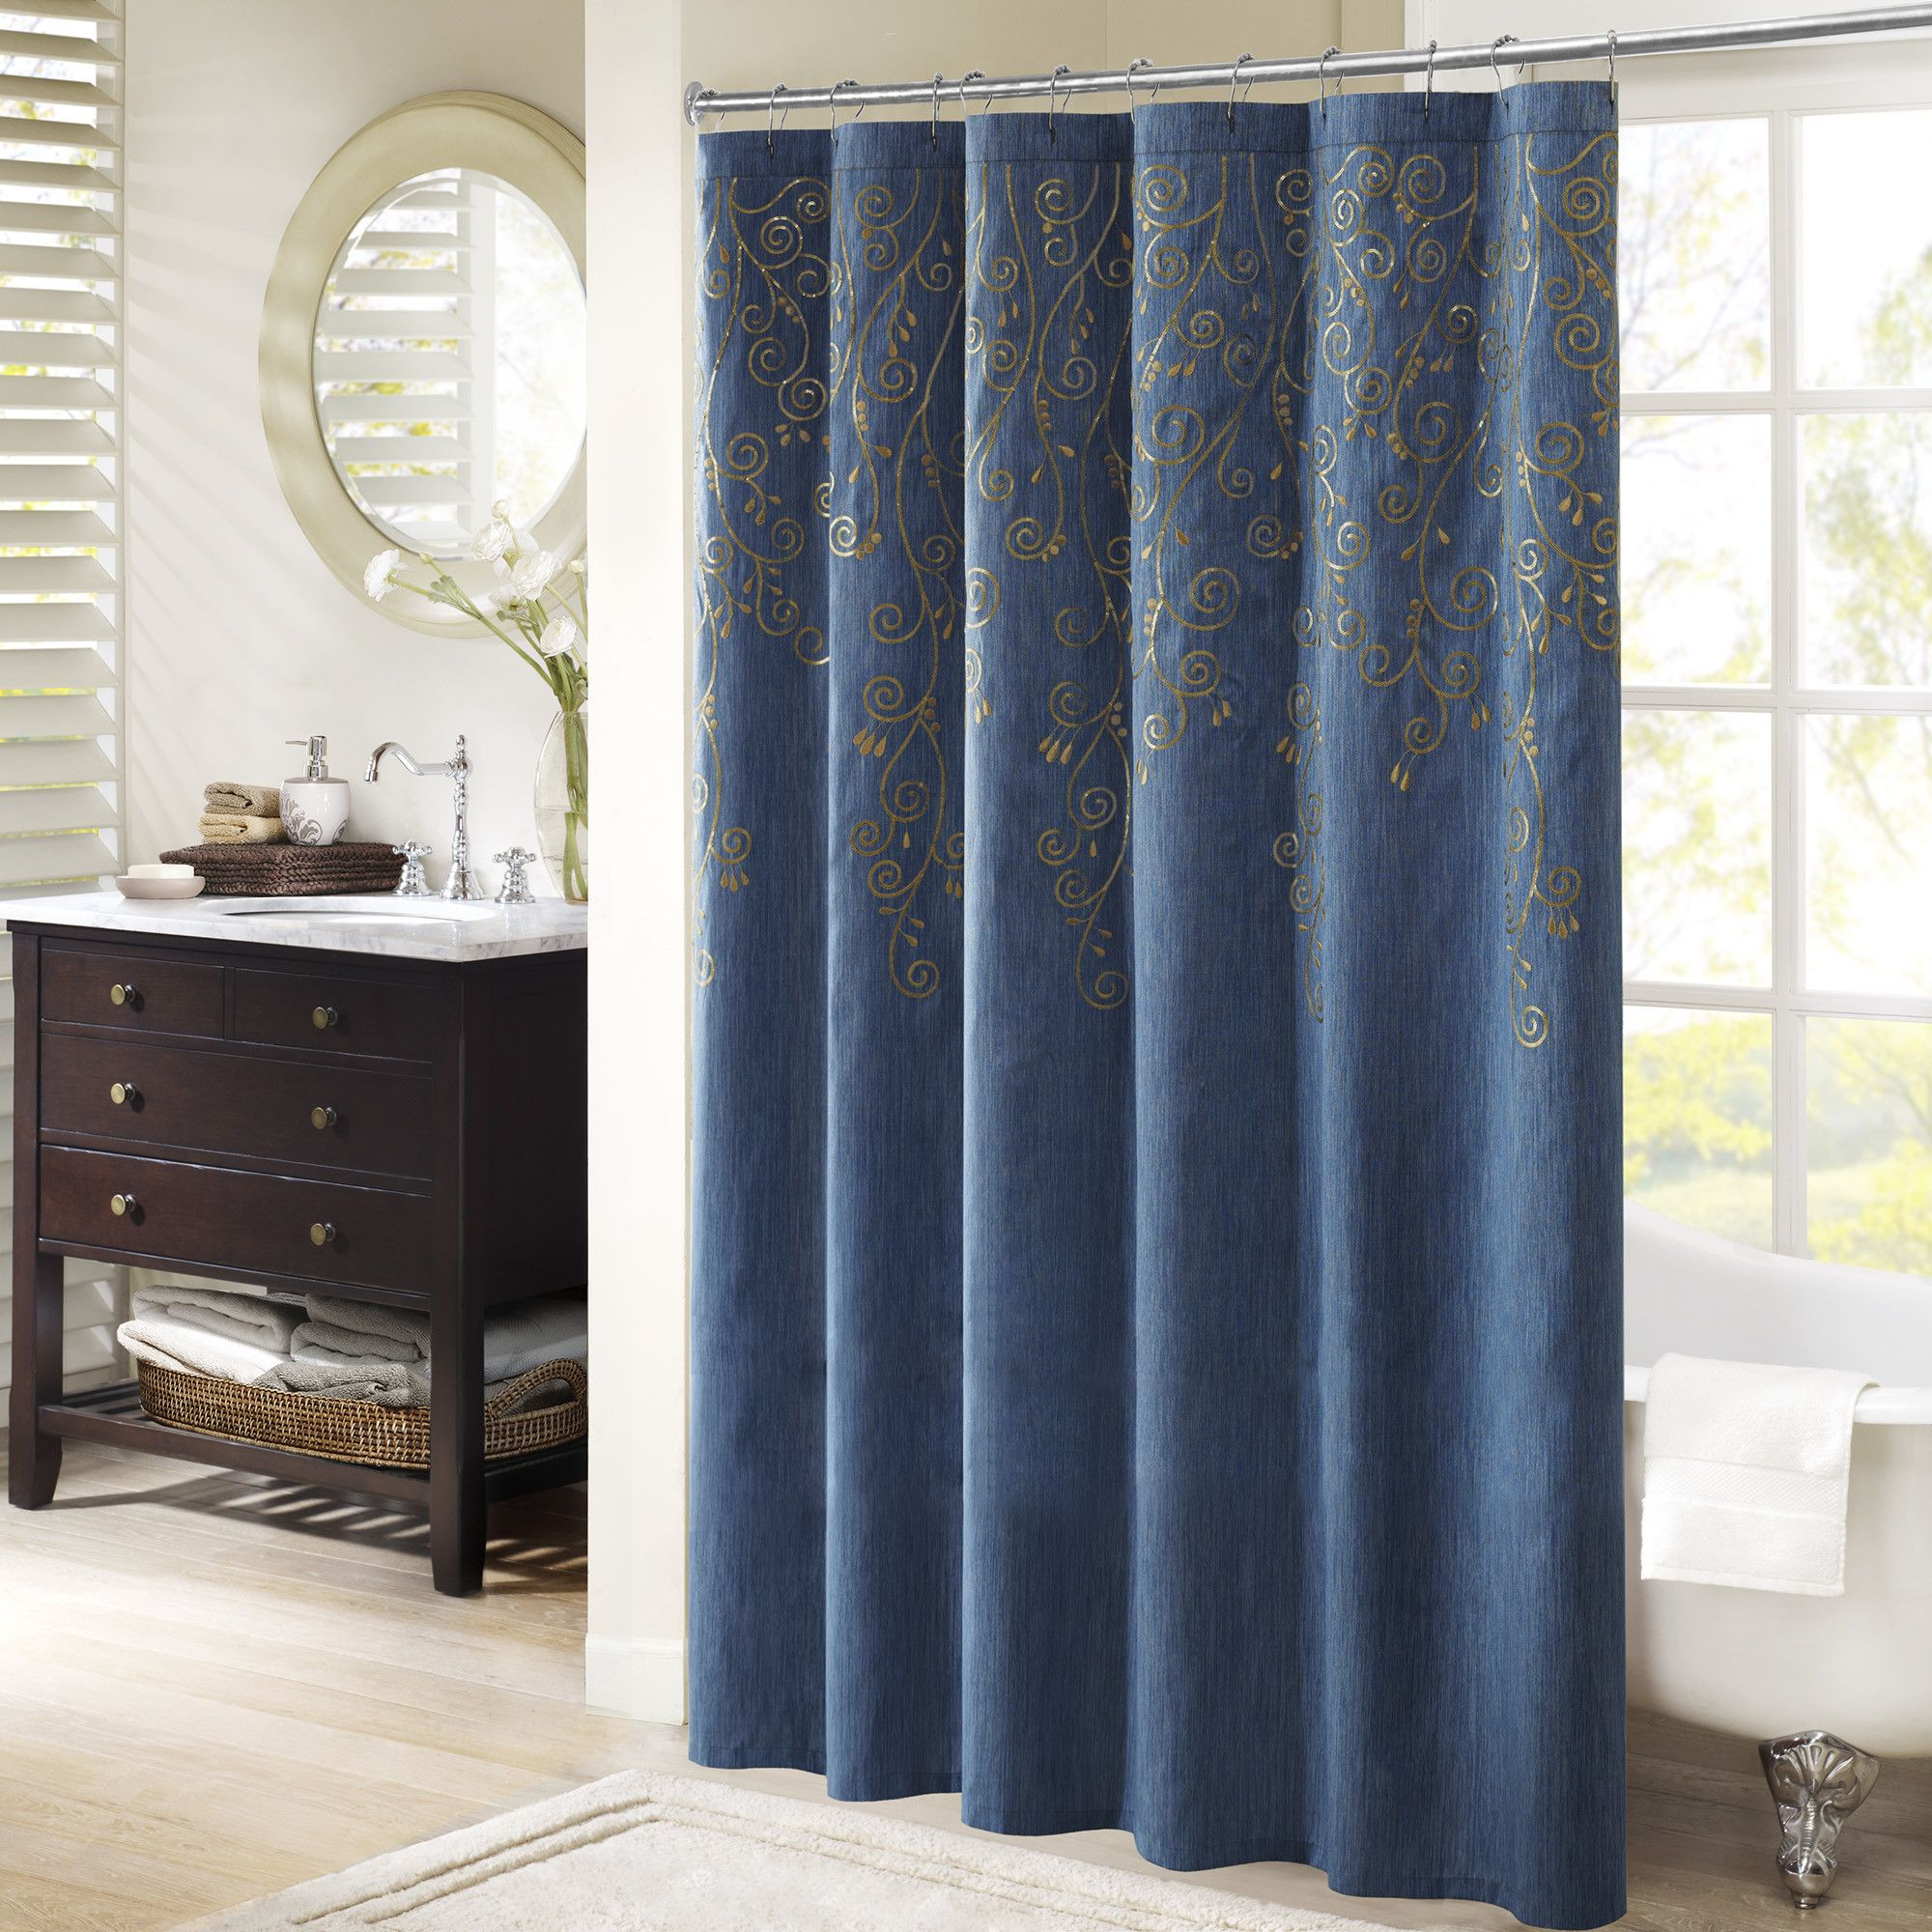 Monrovia embroidered shower curtain bath products and products